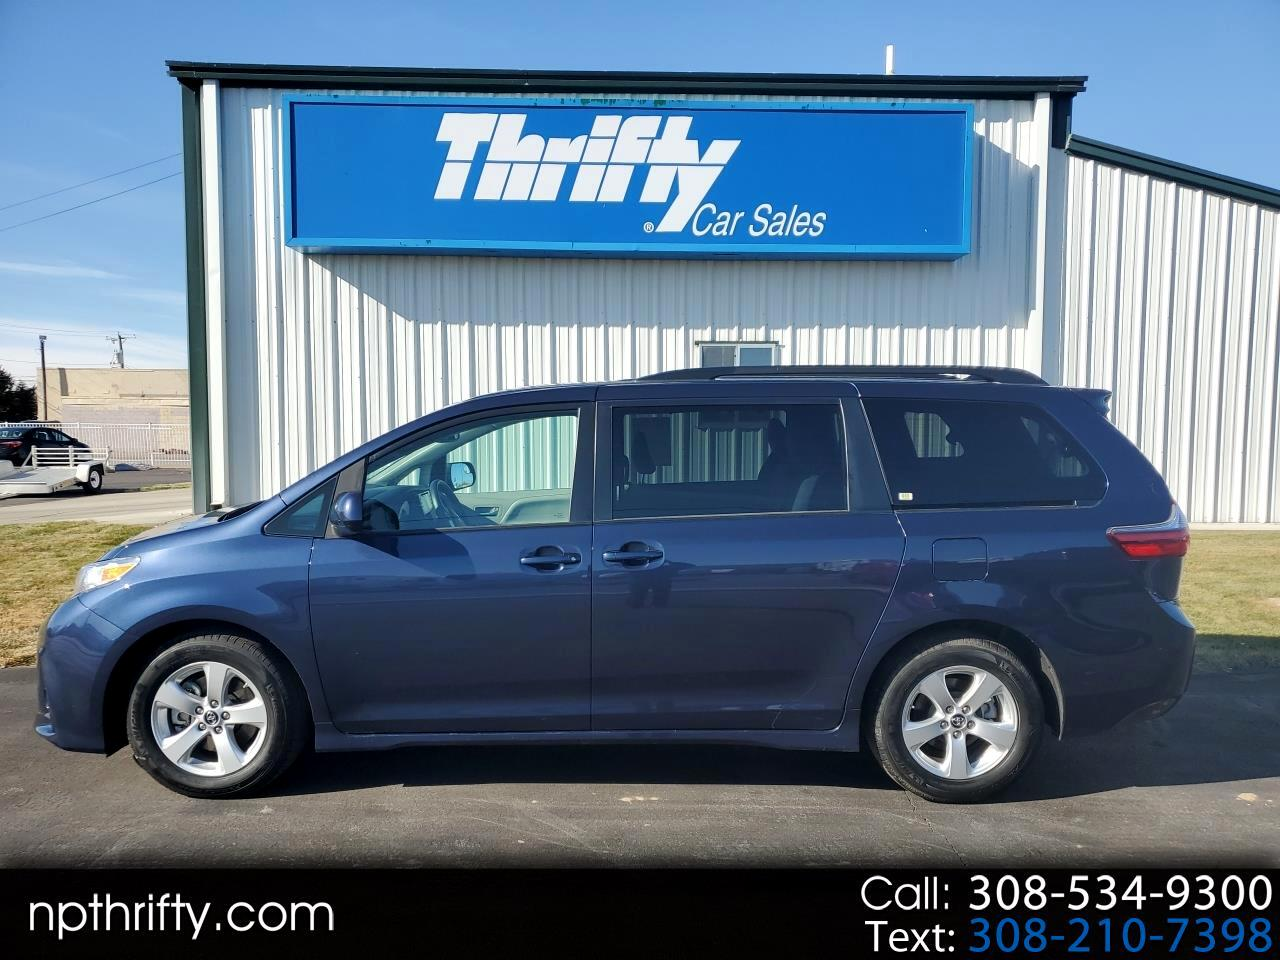 used 2020 toyota sienna le fwd 8 passenger natl for sale in north platte ne 69101 thrifty car sales used 2020 toyota sienna le fwd 8